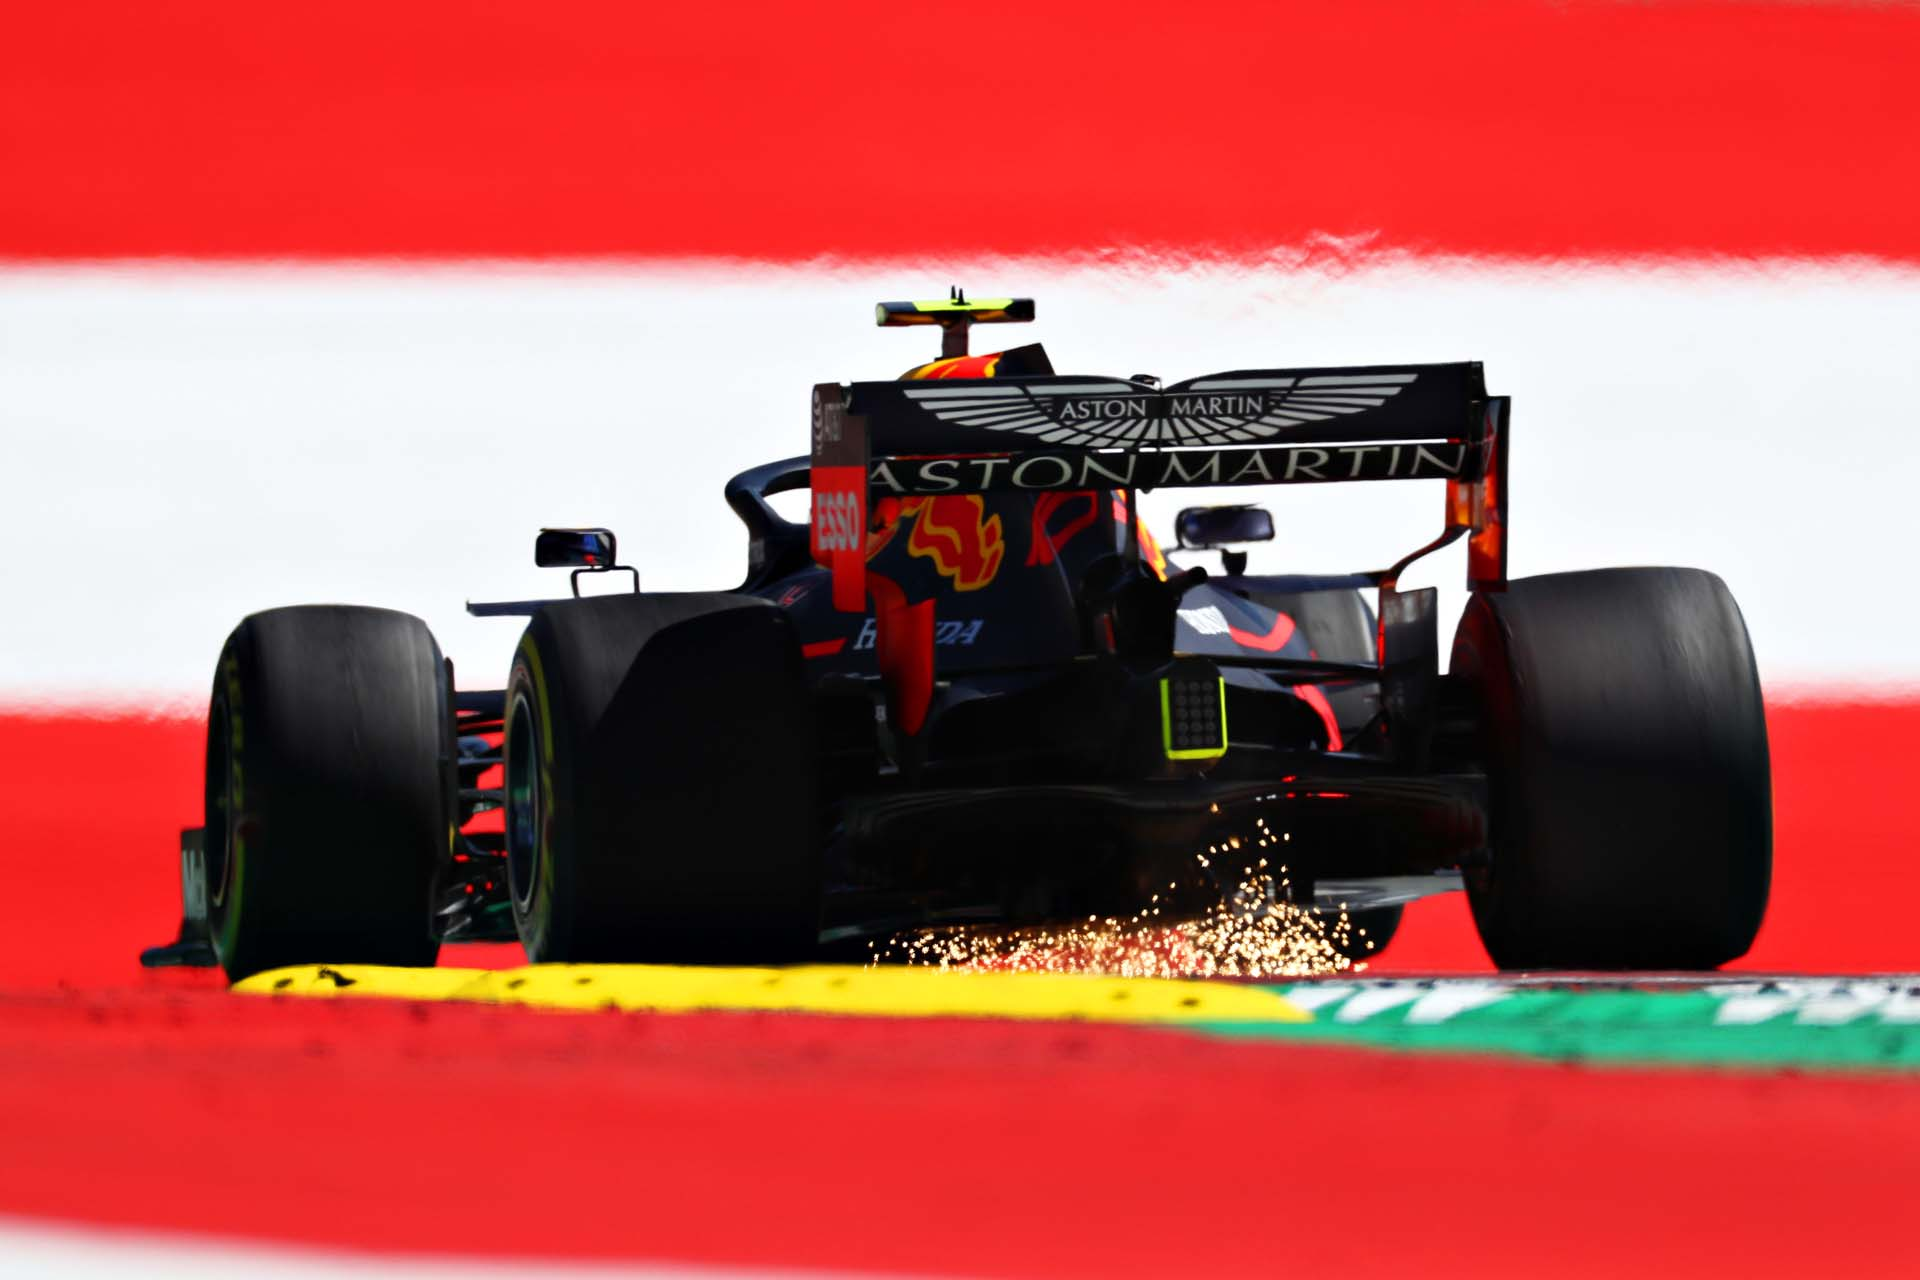 SPIELBERG, AUSTRIA - JUNE 28: Sparks fly behind Pierre Gasly of France driving the (10) Aston Martin Red Bull Racing RB15 during practice for the F1 Grand Prix of Austria at Red Bull Ring on June 28, 2019 in Spielberg, Austria. (Photo by Mark Thompson/Getty Images) // Getty Images / Red Bull Content Pool  // AP-1ZSNNKF612111 // Usage for editorial use only // Please go to www.redbullcontentpool.com for further information. //